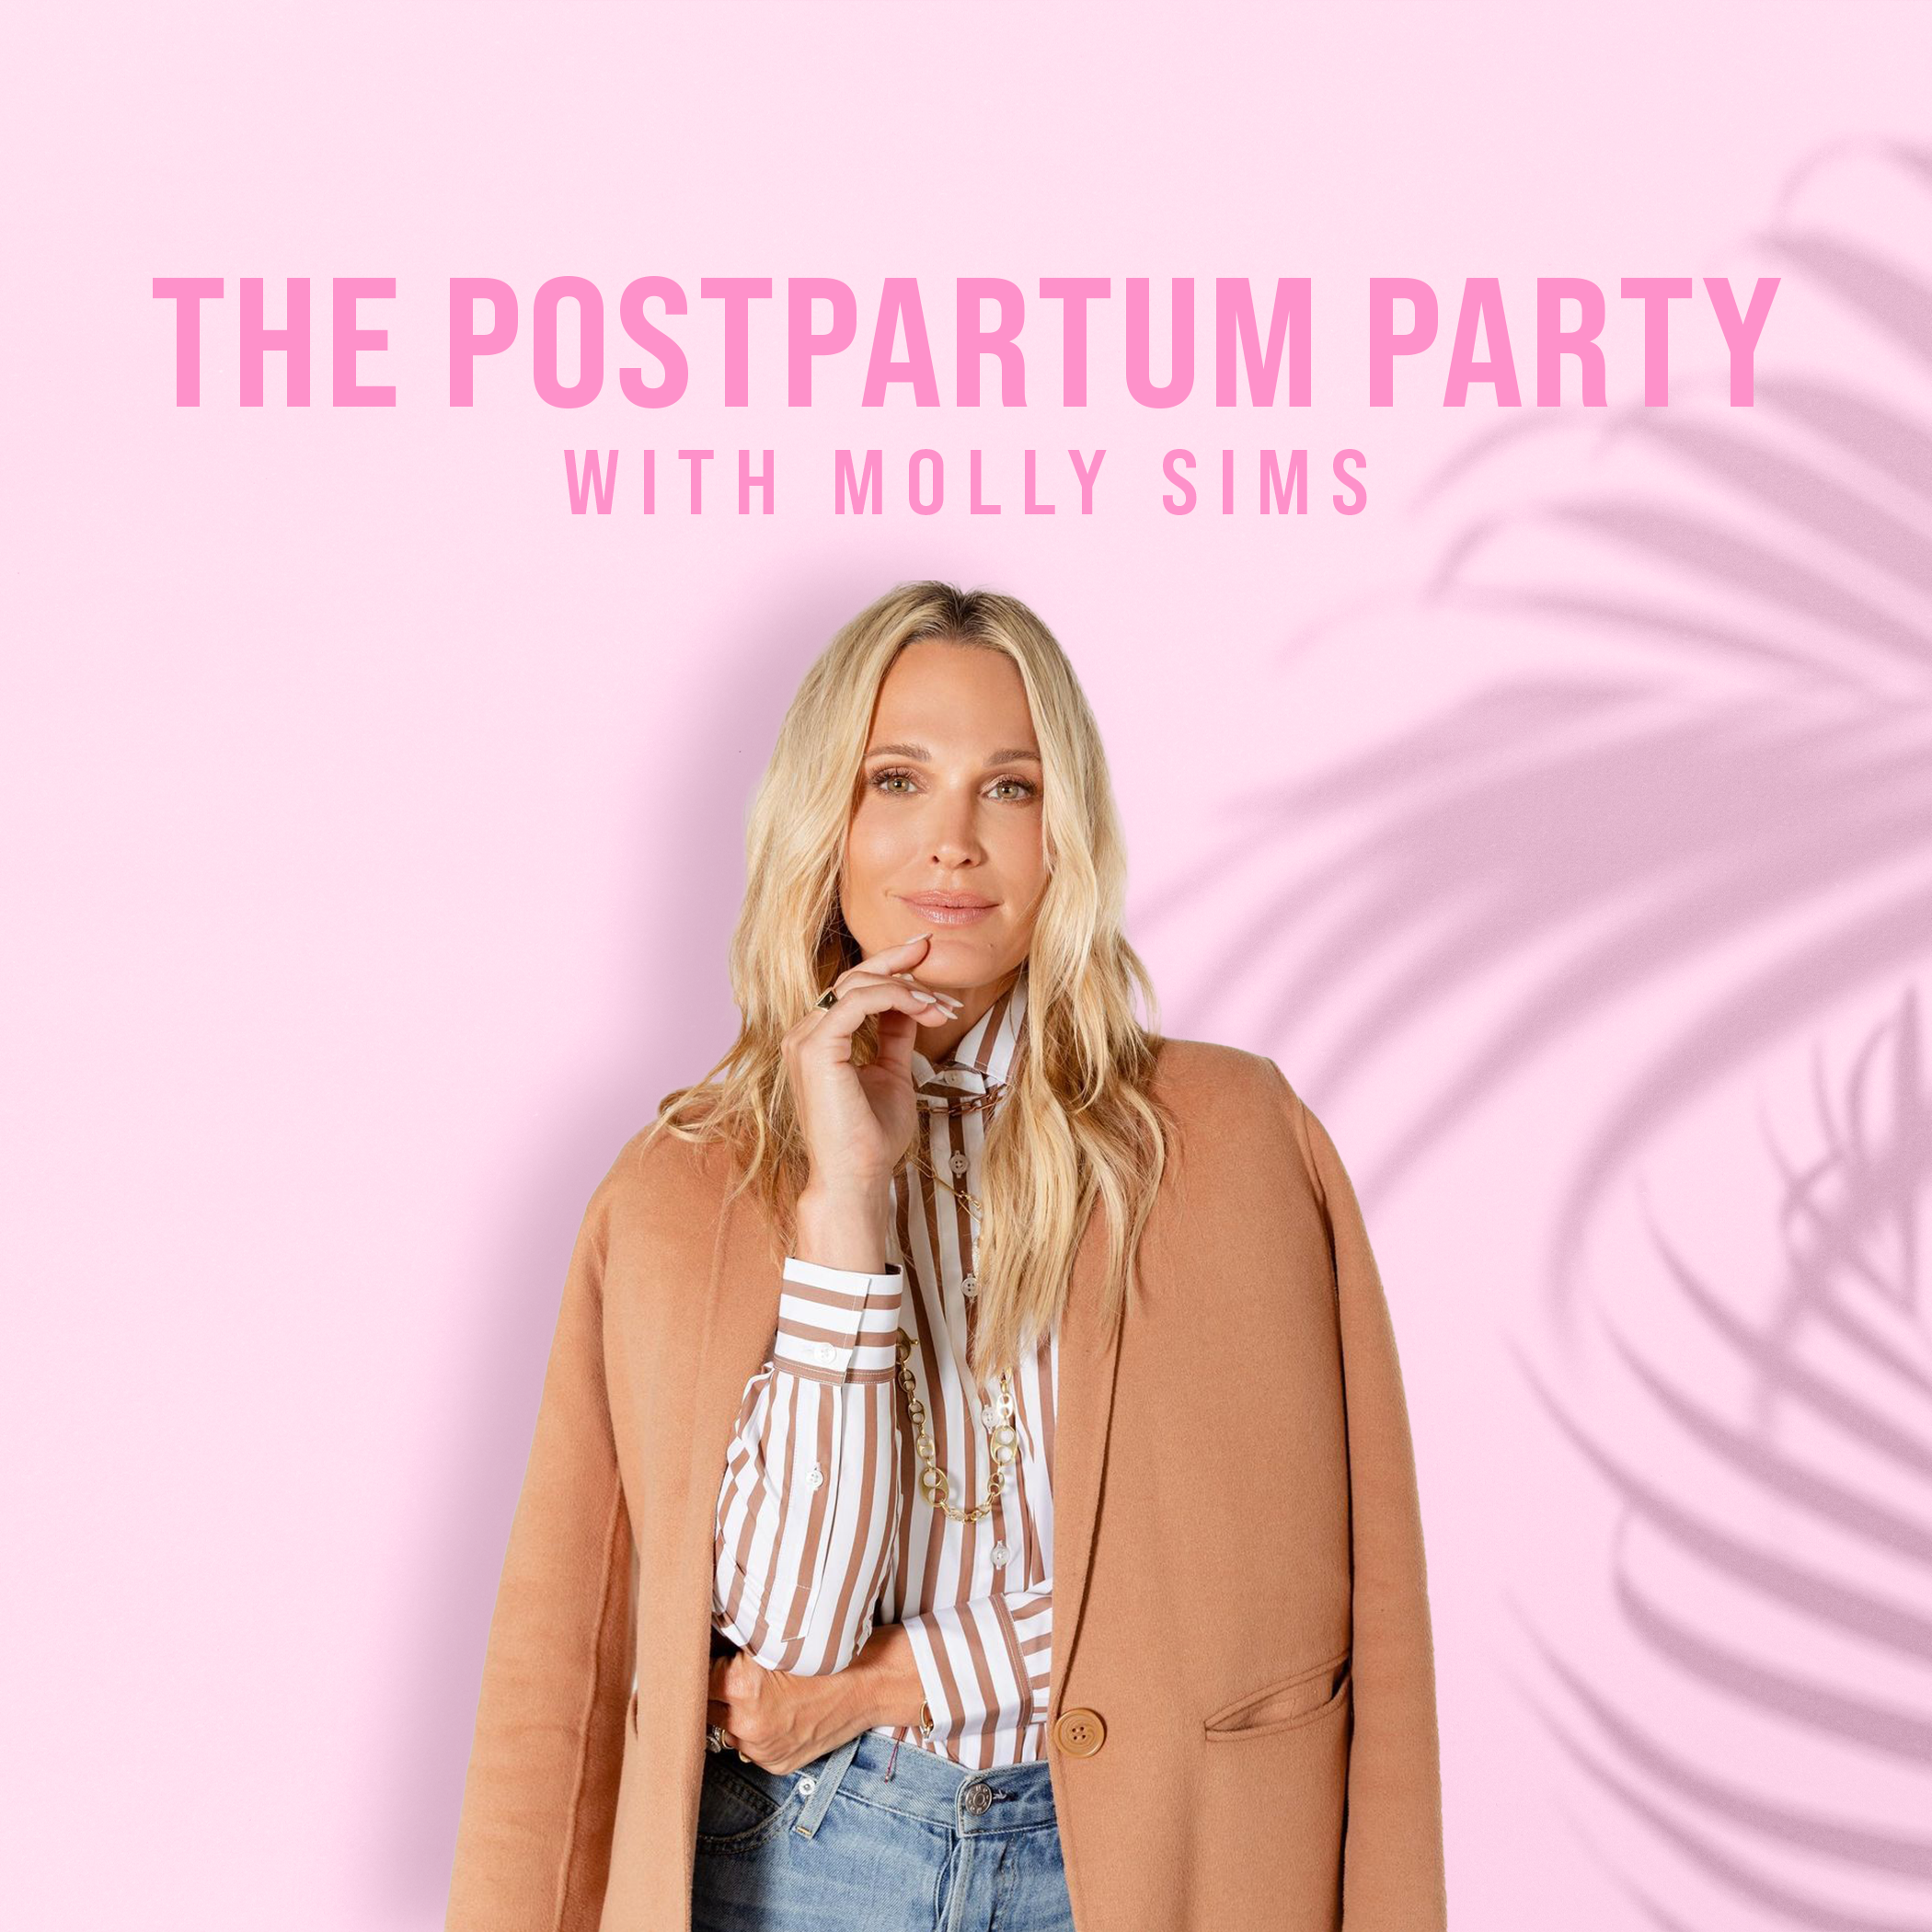 The Postpartum Party With Molly Sims